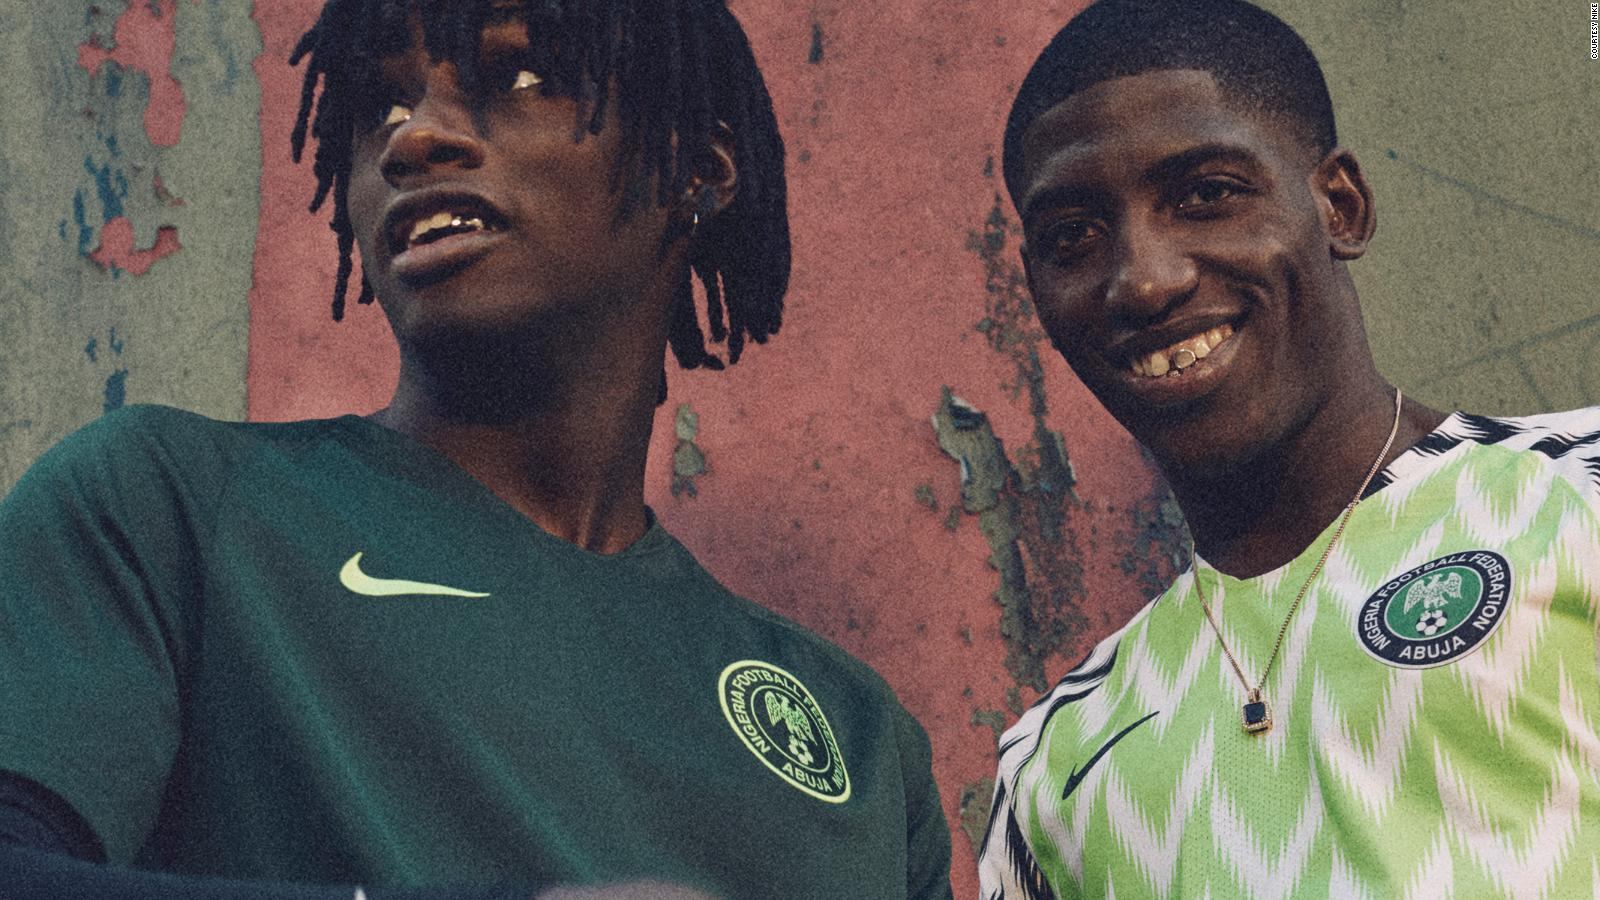 c2310df0d80fe World Cup 2018 kits: The most stylish team shirts - CNN Style